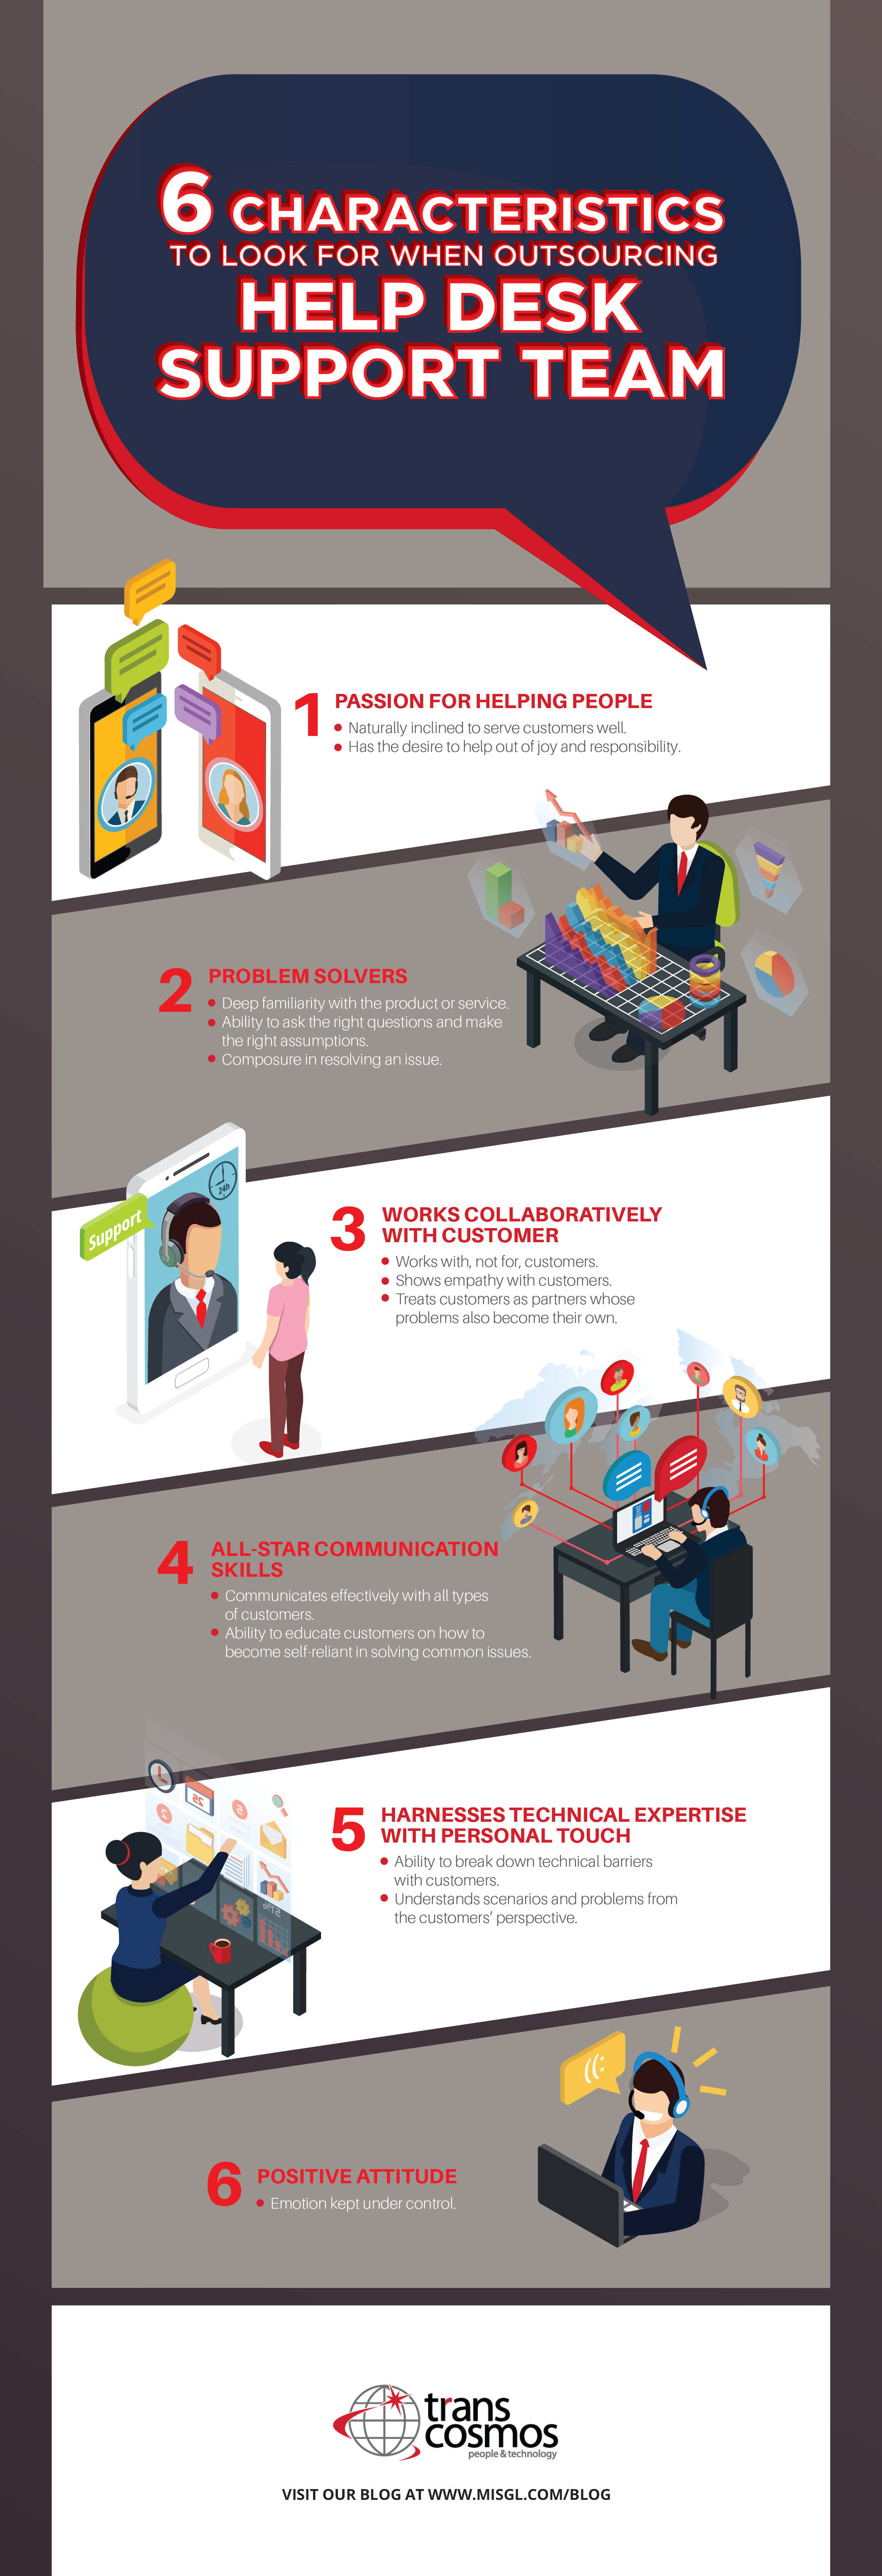 Infographic-6 Characteristics to Look for When Outsourcing Help Desk Support Team